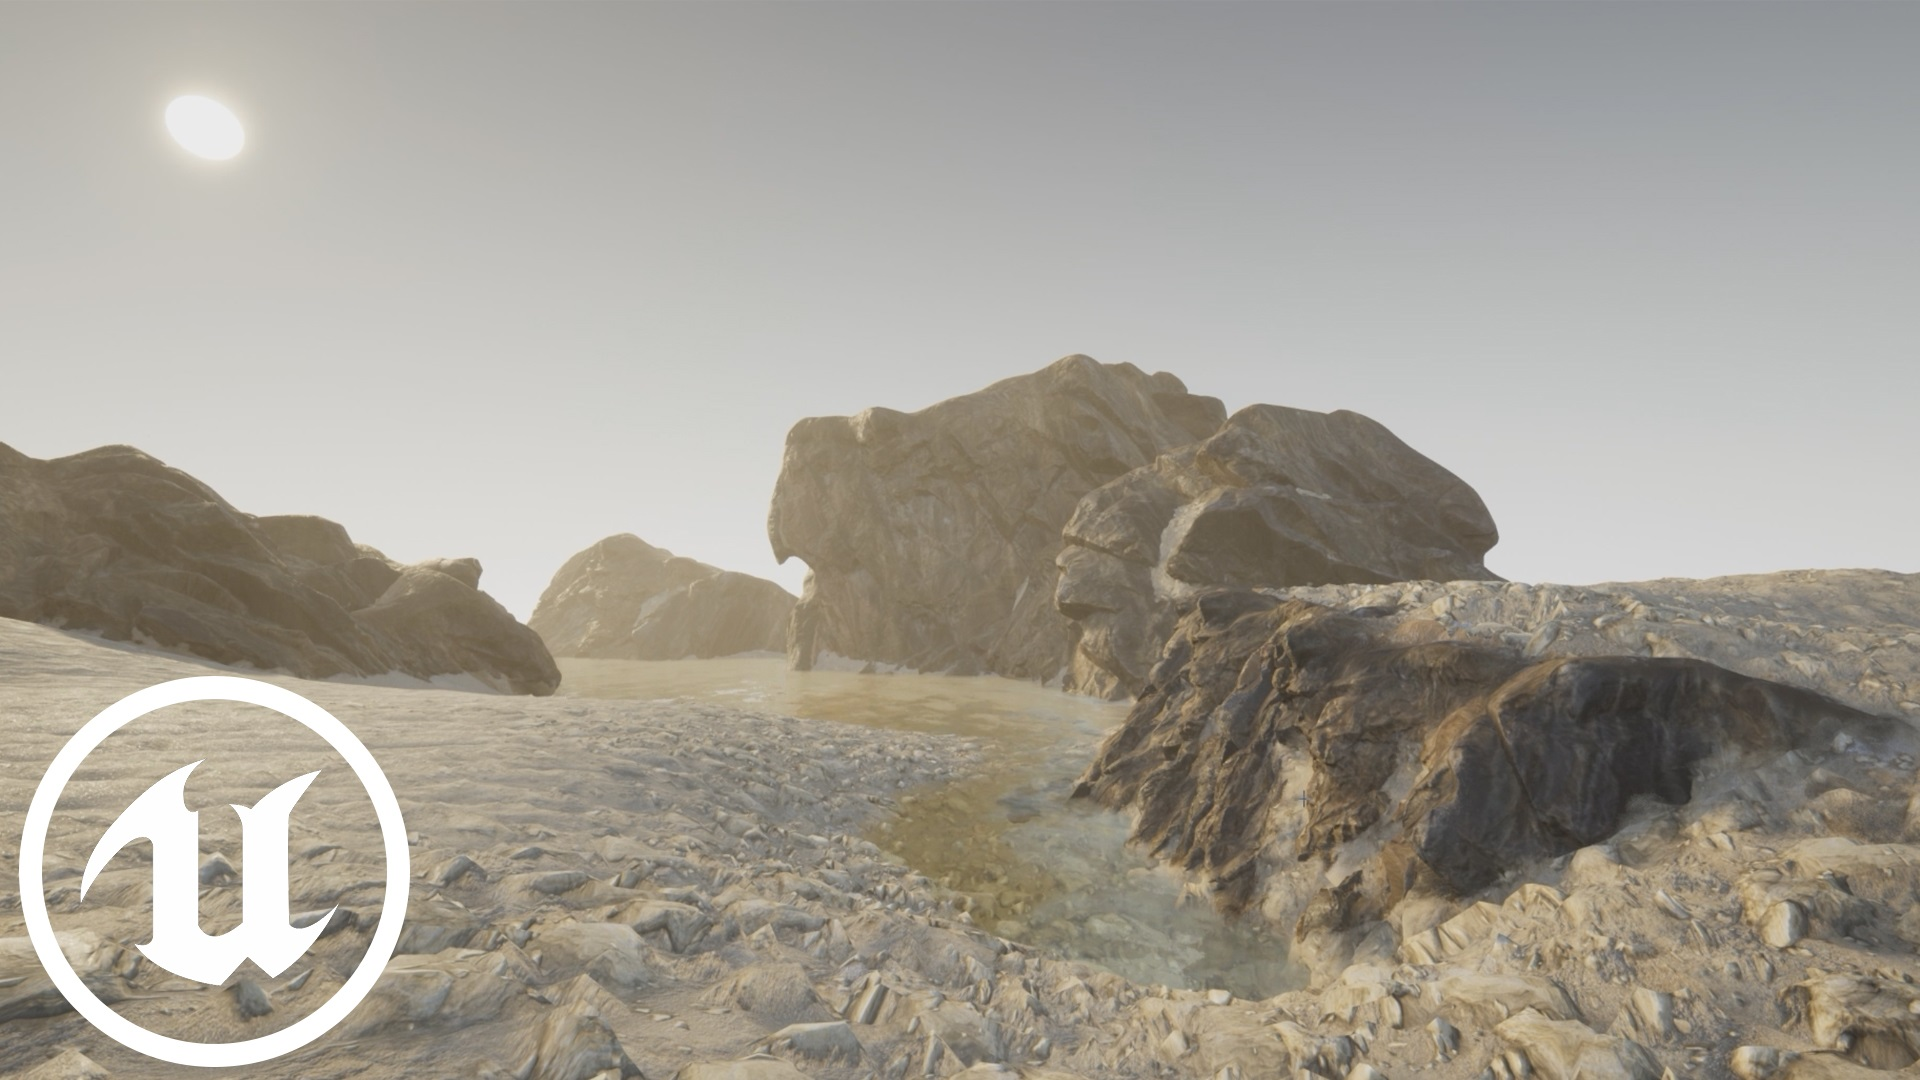 Terrain Blending Meshes with UE4 - Distance Field blending: How, why, and why not?